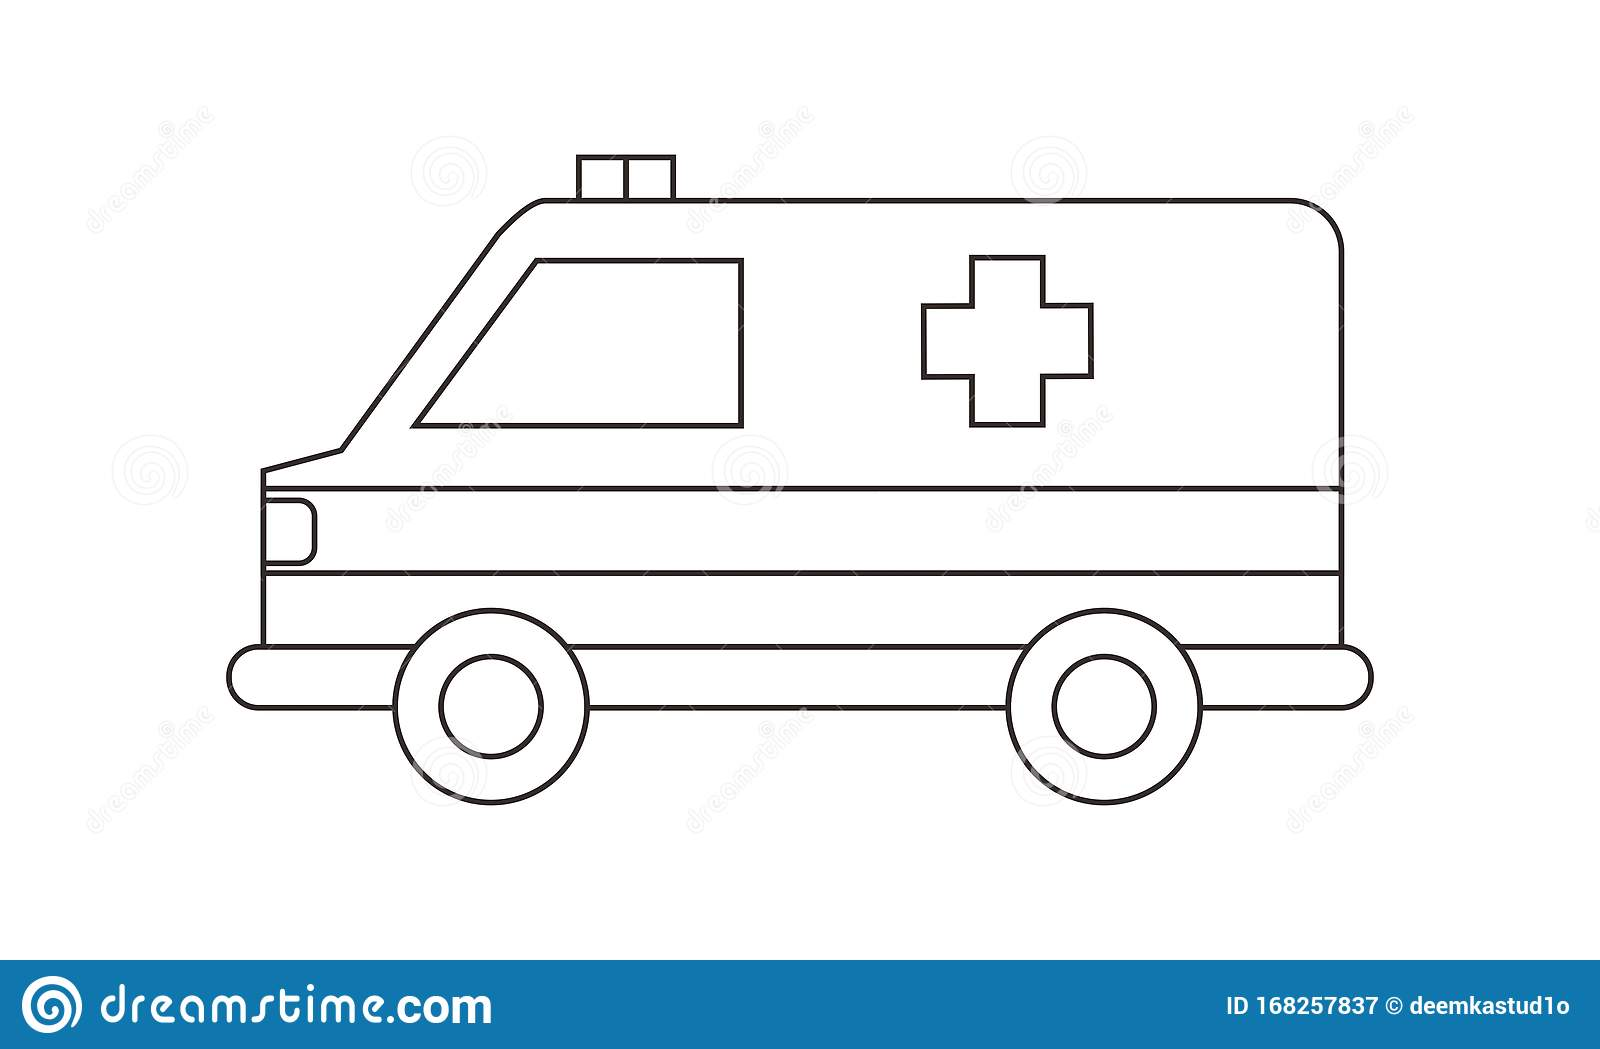 Ambulance Coloring Book Stock Illustrations 164 Ambulance Coloring Book Stock Illustrations Vectors Clipart Dreamstime